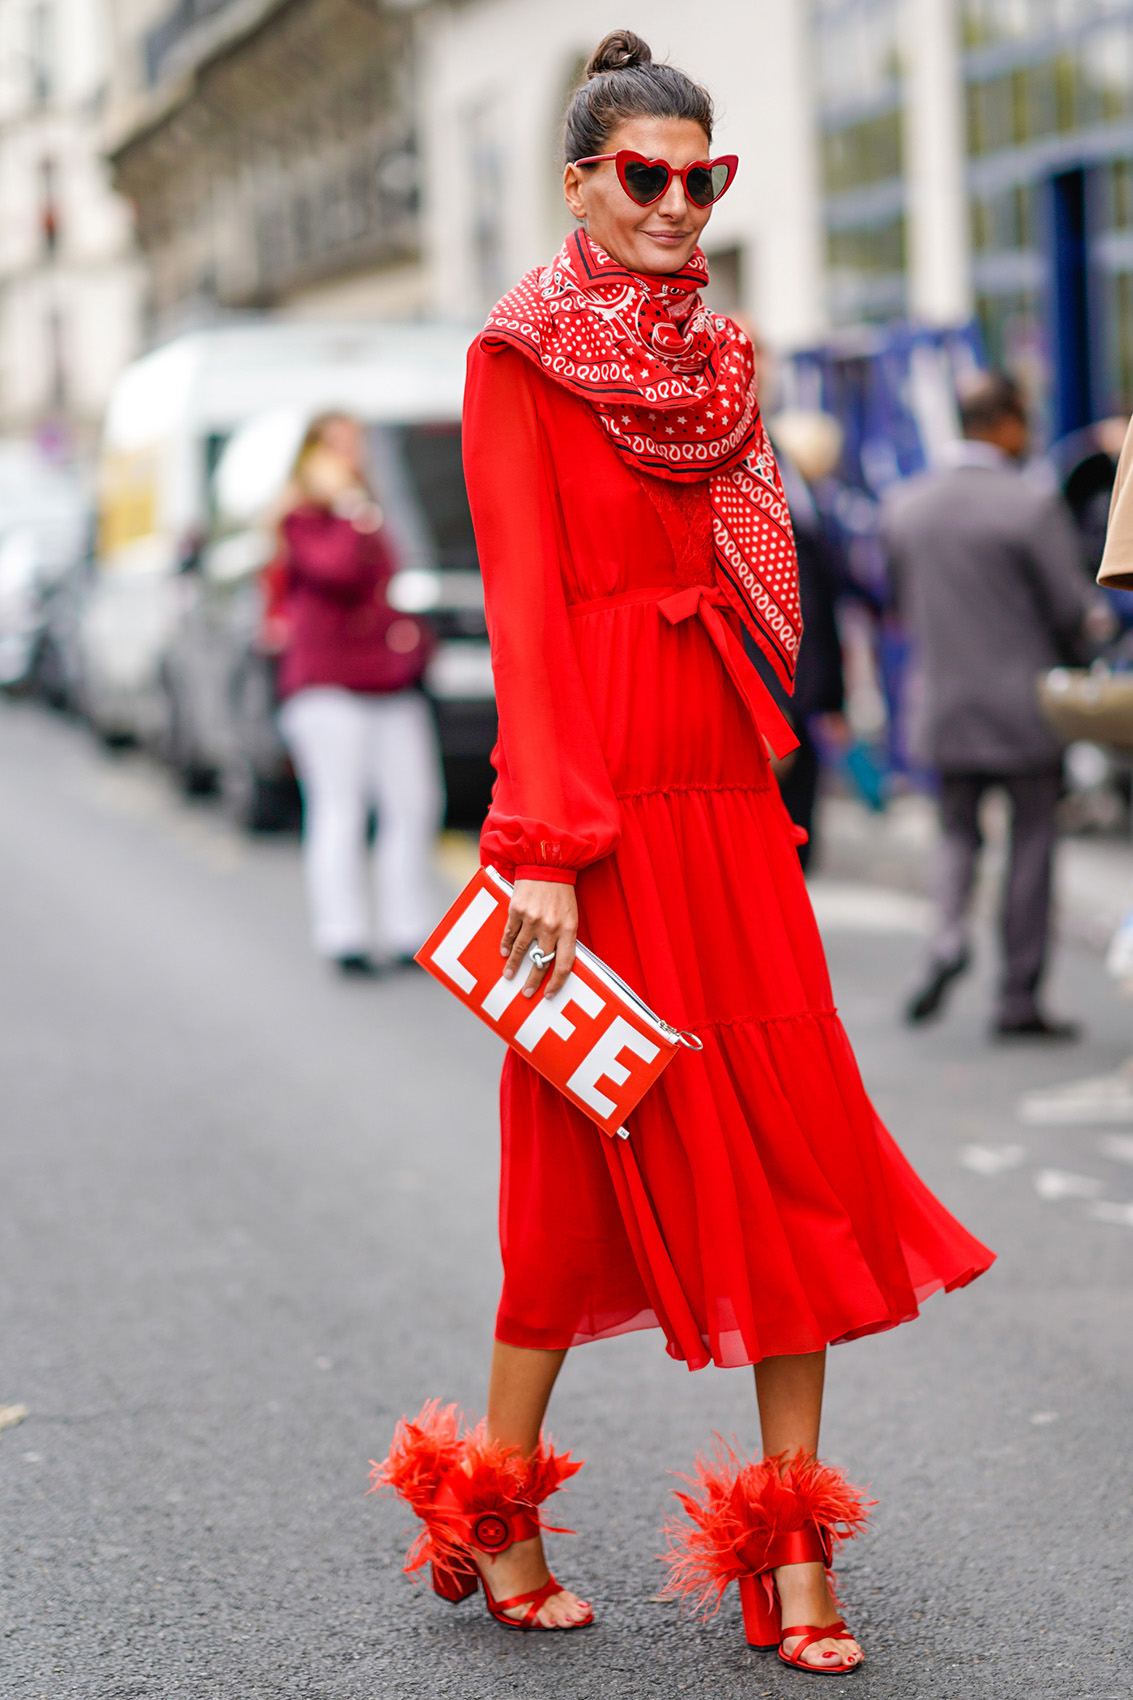 """PARIS, FRANCE - OCTOBER 02: Giovanna Battaglia wears a red dress, a red scarf, red heart sunglasses, a red """"LIFE"""" clutch, outside Giambattista Valli, during Paris Fashion Week Womenswear Spring/Summer 2018, on October 2, 2017 in Paris, France. (Photo by Edward Berthelot/Getty Images)"""